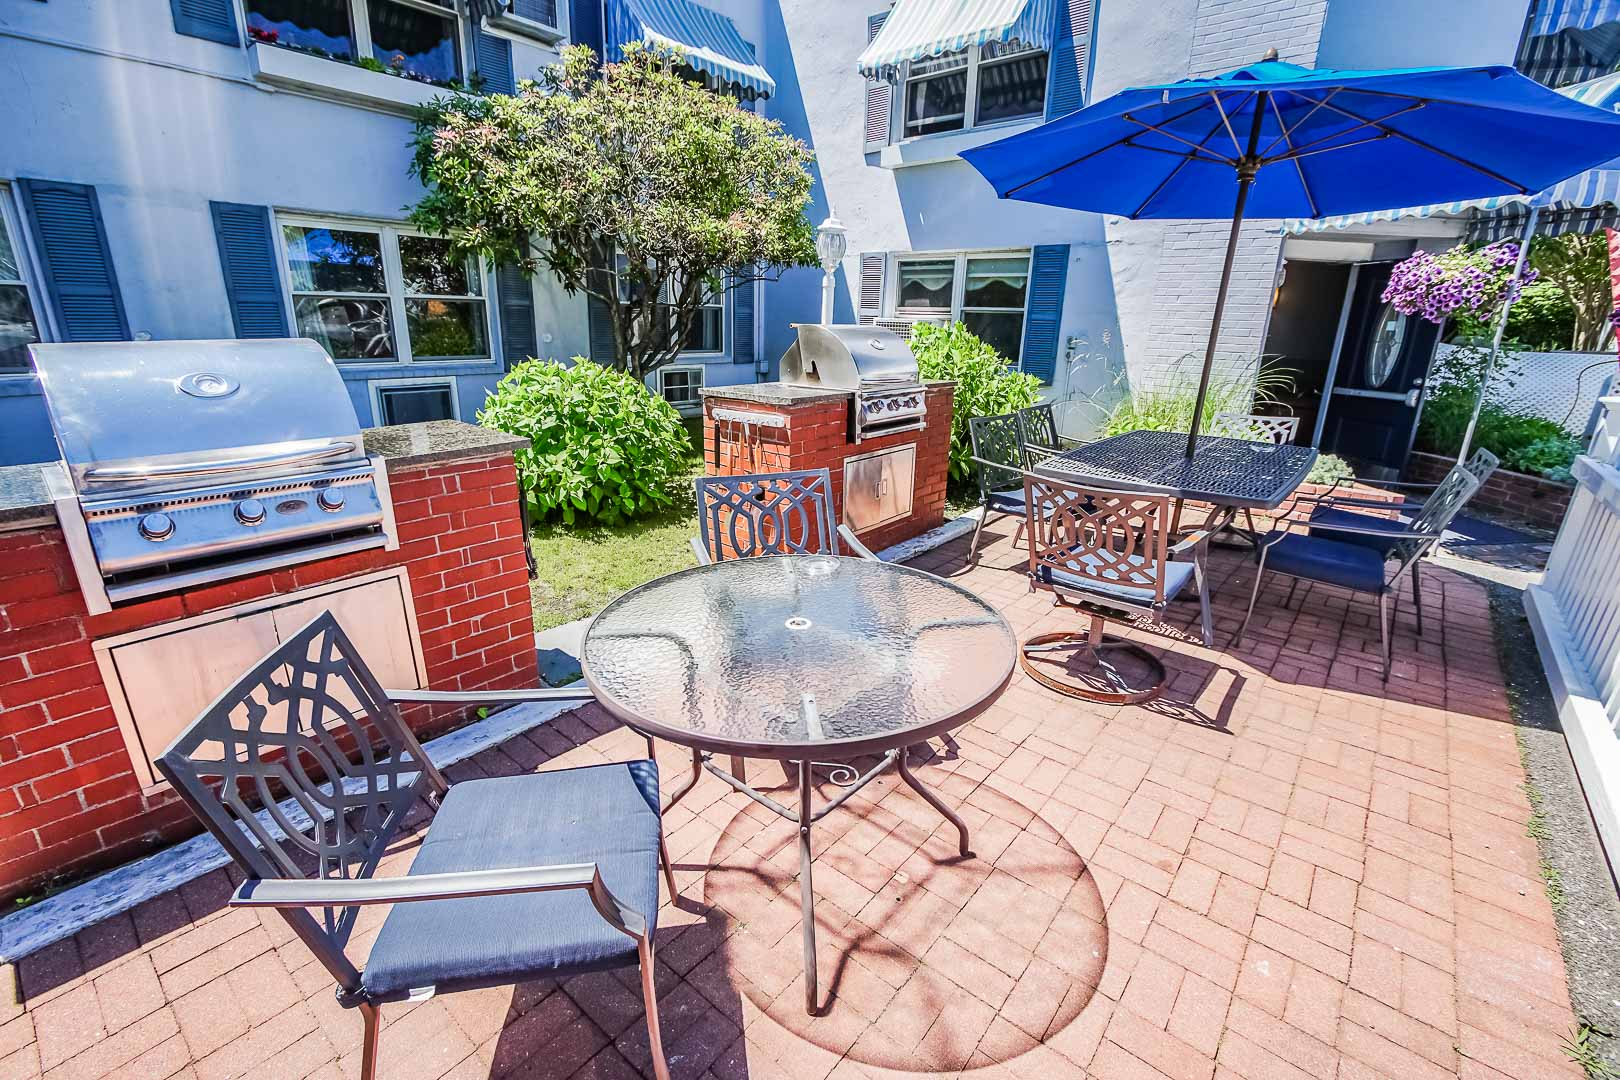 An inviting area with with BBQ Grills and tables at VRI's Harbor Landing Resort in Massachusetts.